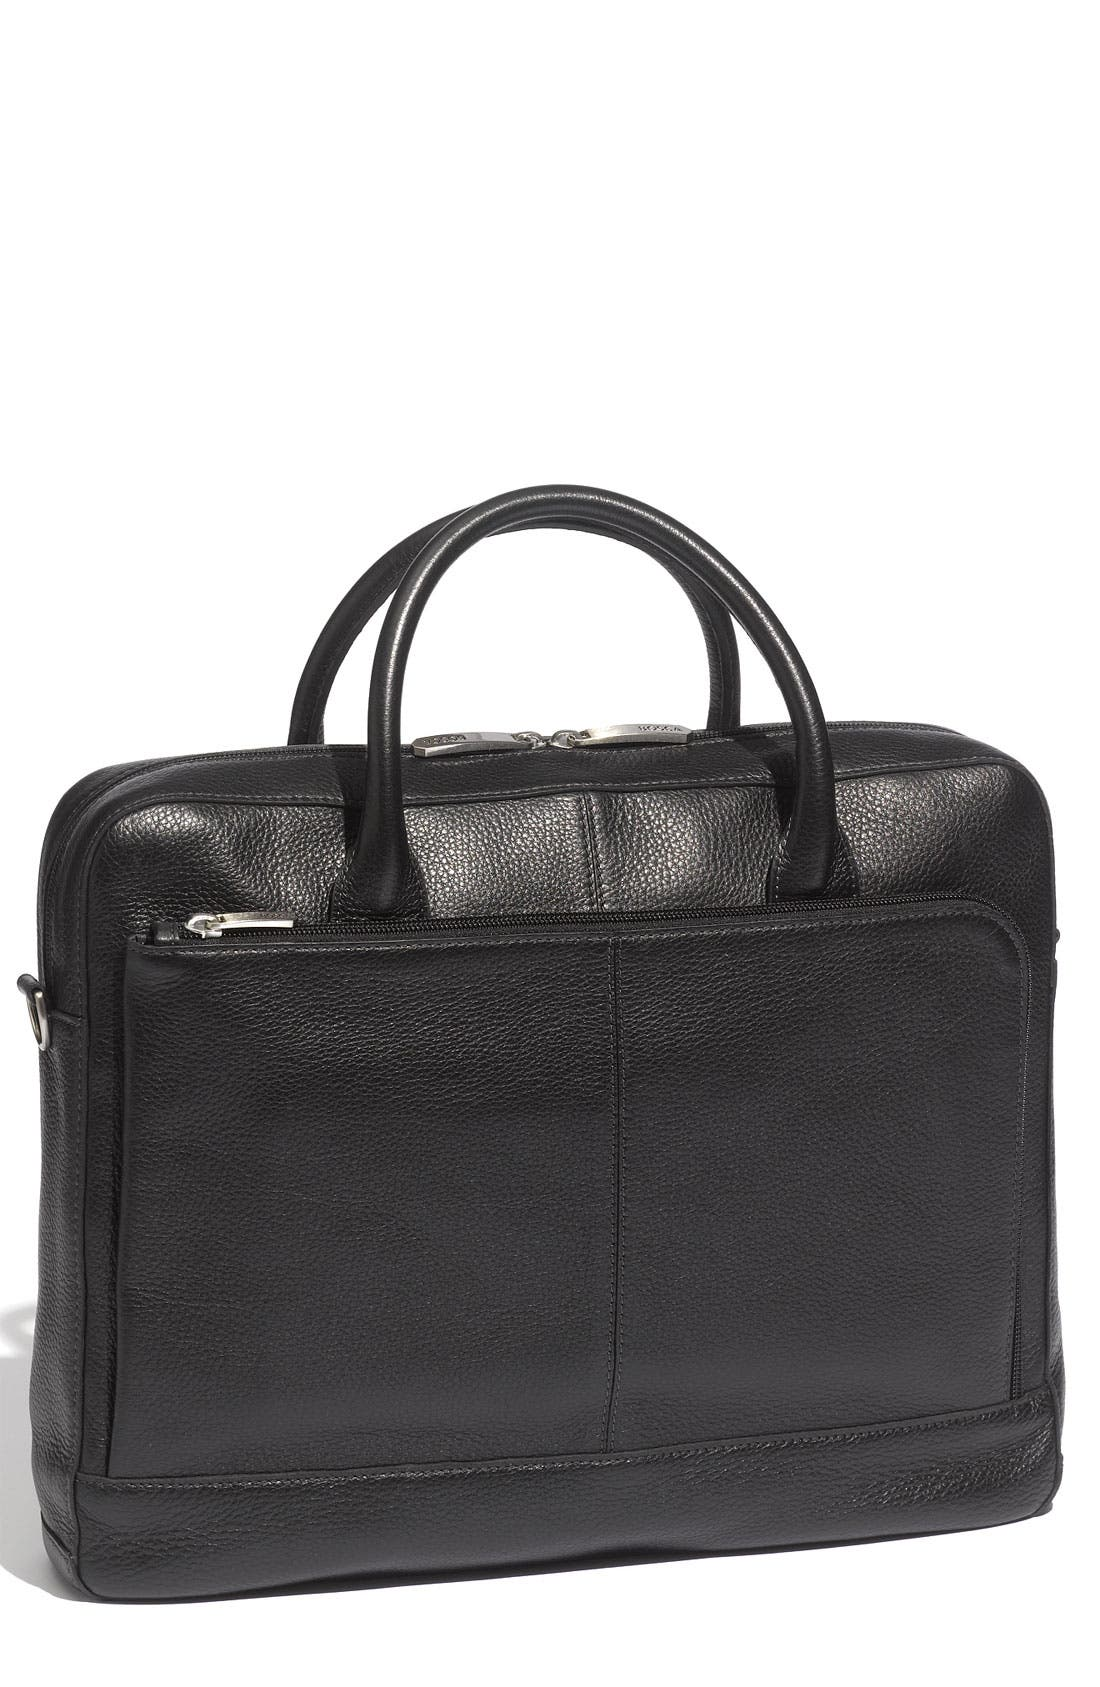 Alternate Image 1 Selected - Bosca Slim Leather Briefcase